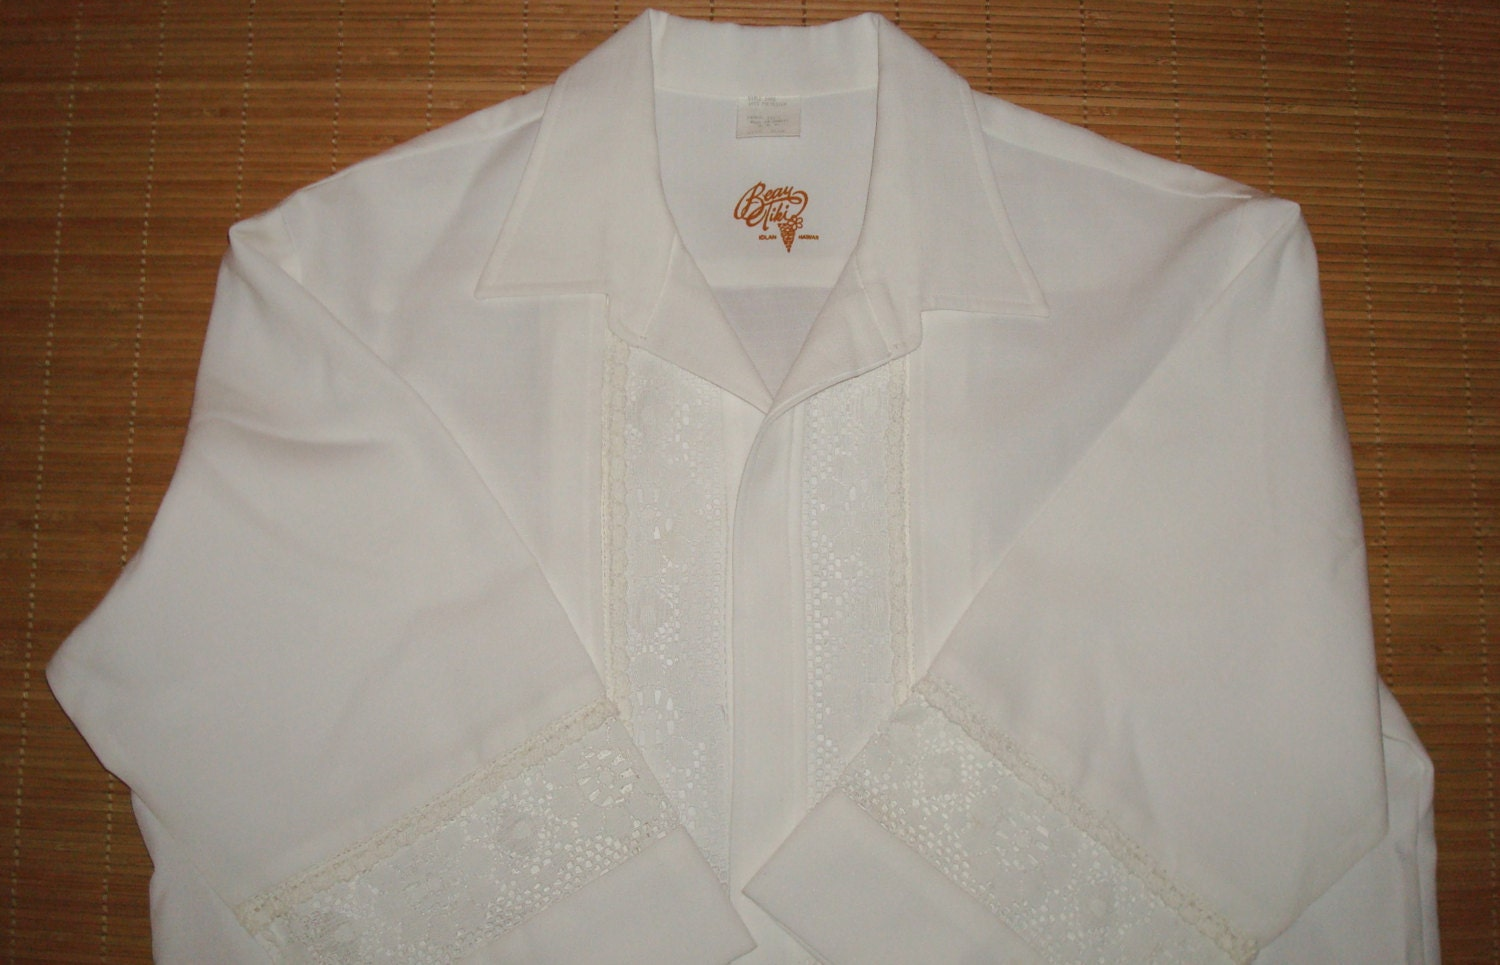 b00588ae Men's Vintage 70's Iolani Hawaiian Wedding Tuxedo Shirt - XL - The Hana  Shirt Co